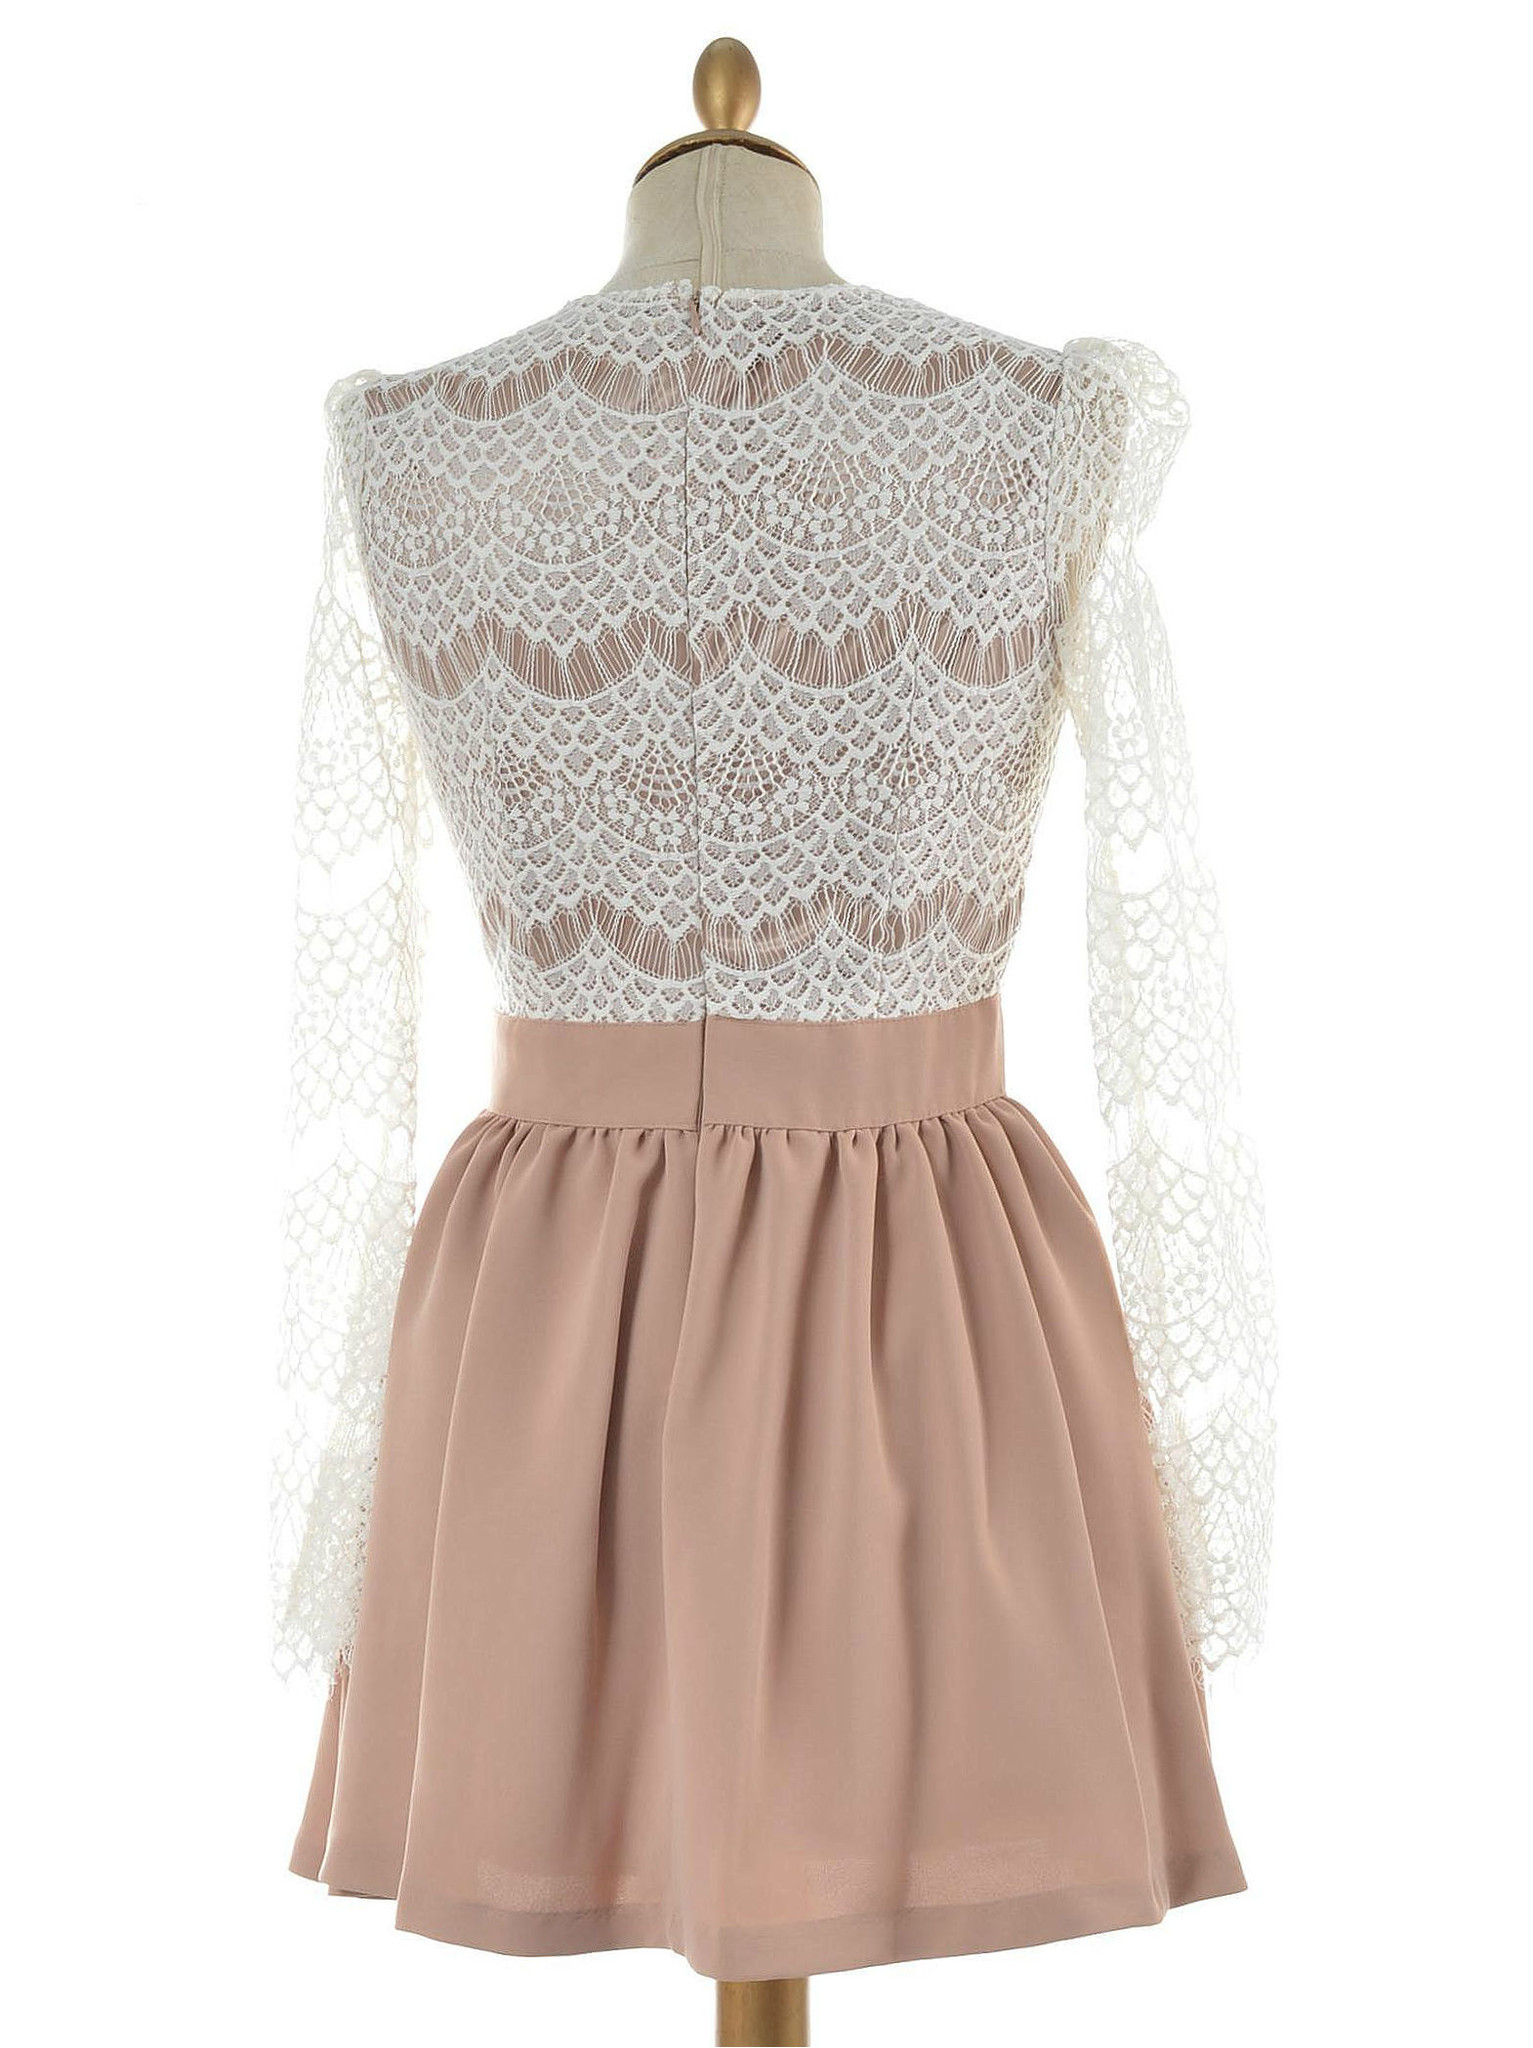 SHADOW LACE DRESS